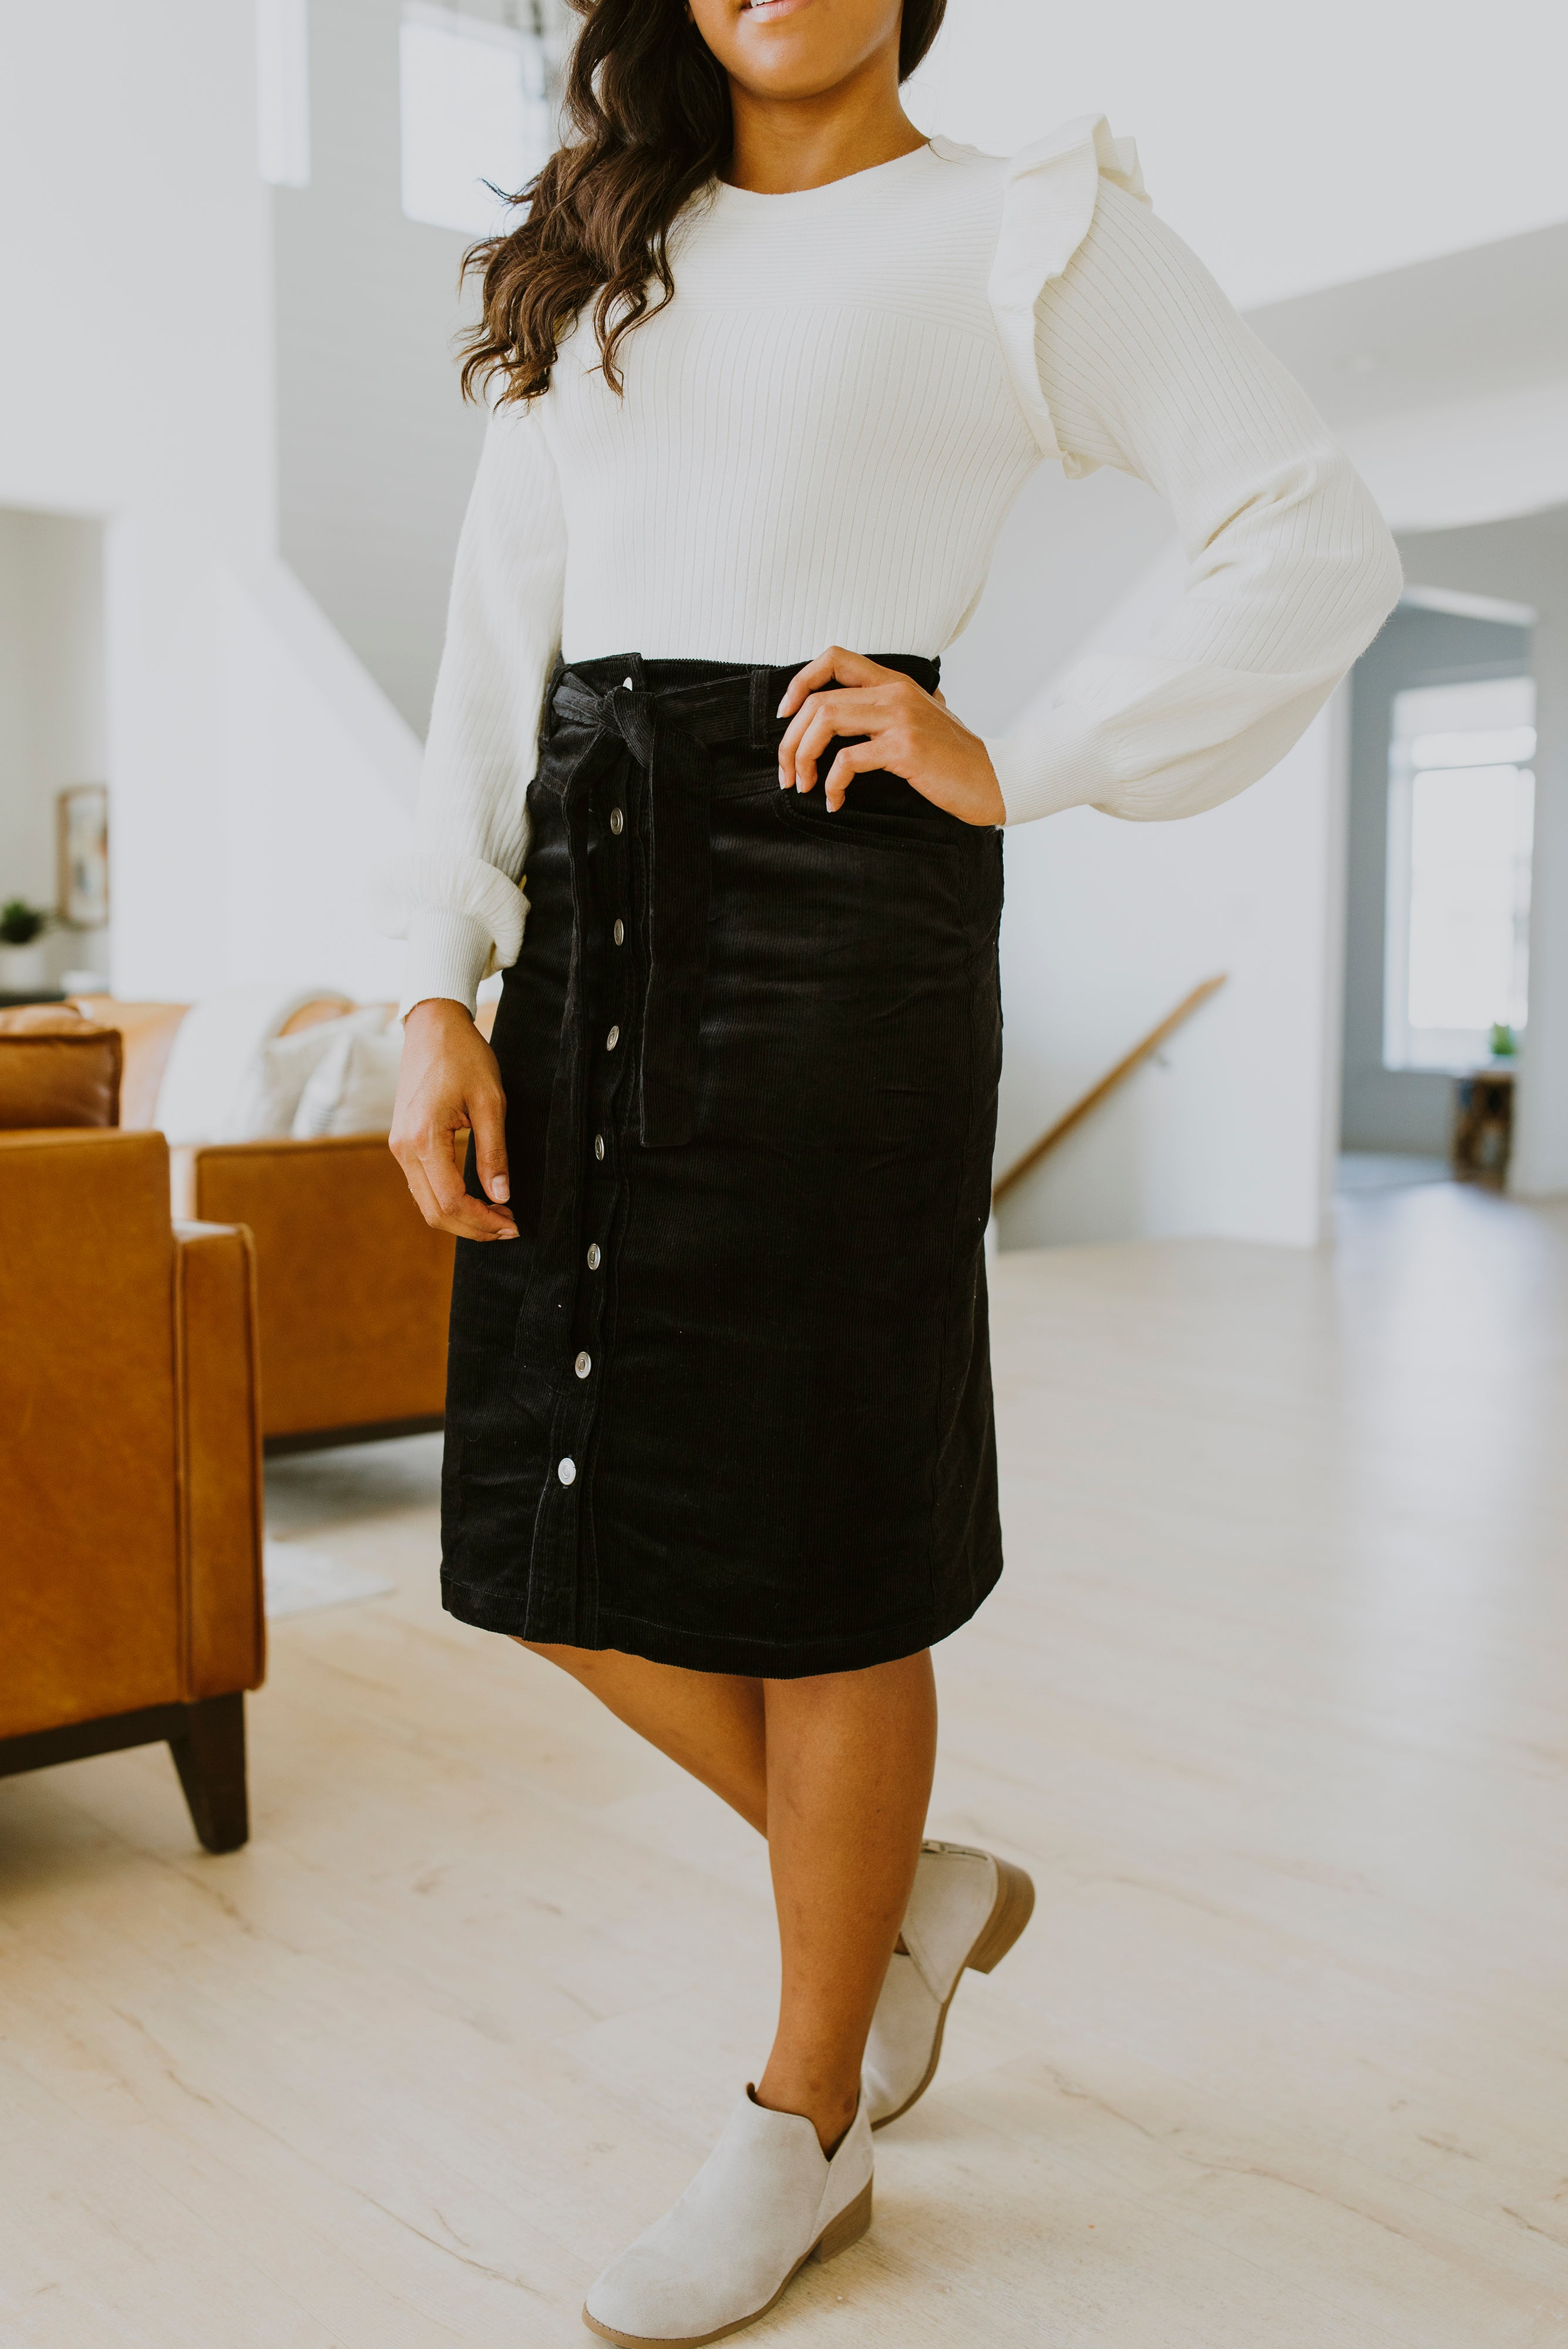 boutique, fall outfits, midi skirt outfit, corduroy skirt outfit, corduroy midi skirt, fall outfits 2020, corduroy midi skirt button front, corduroy midi skirt style, midi skirt outfit fall, fall 2020, skirts, outfit ideas, fall 2020 outfits, corduroy skirt knee length, corduroy skirt black, Utah Boutique, Fall fashion, online boutique, midi skirt, button down skirt, gift ideas, Christmas gift ideas